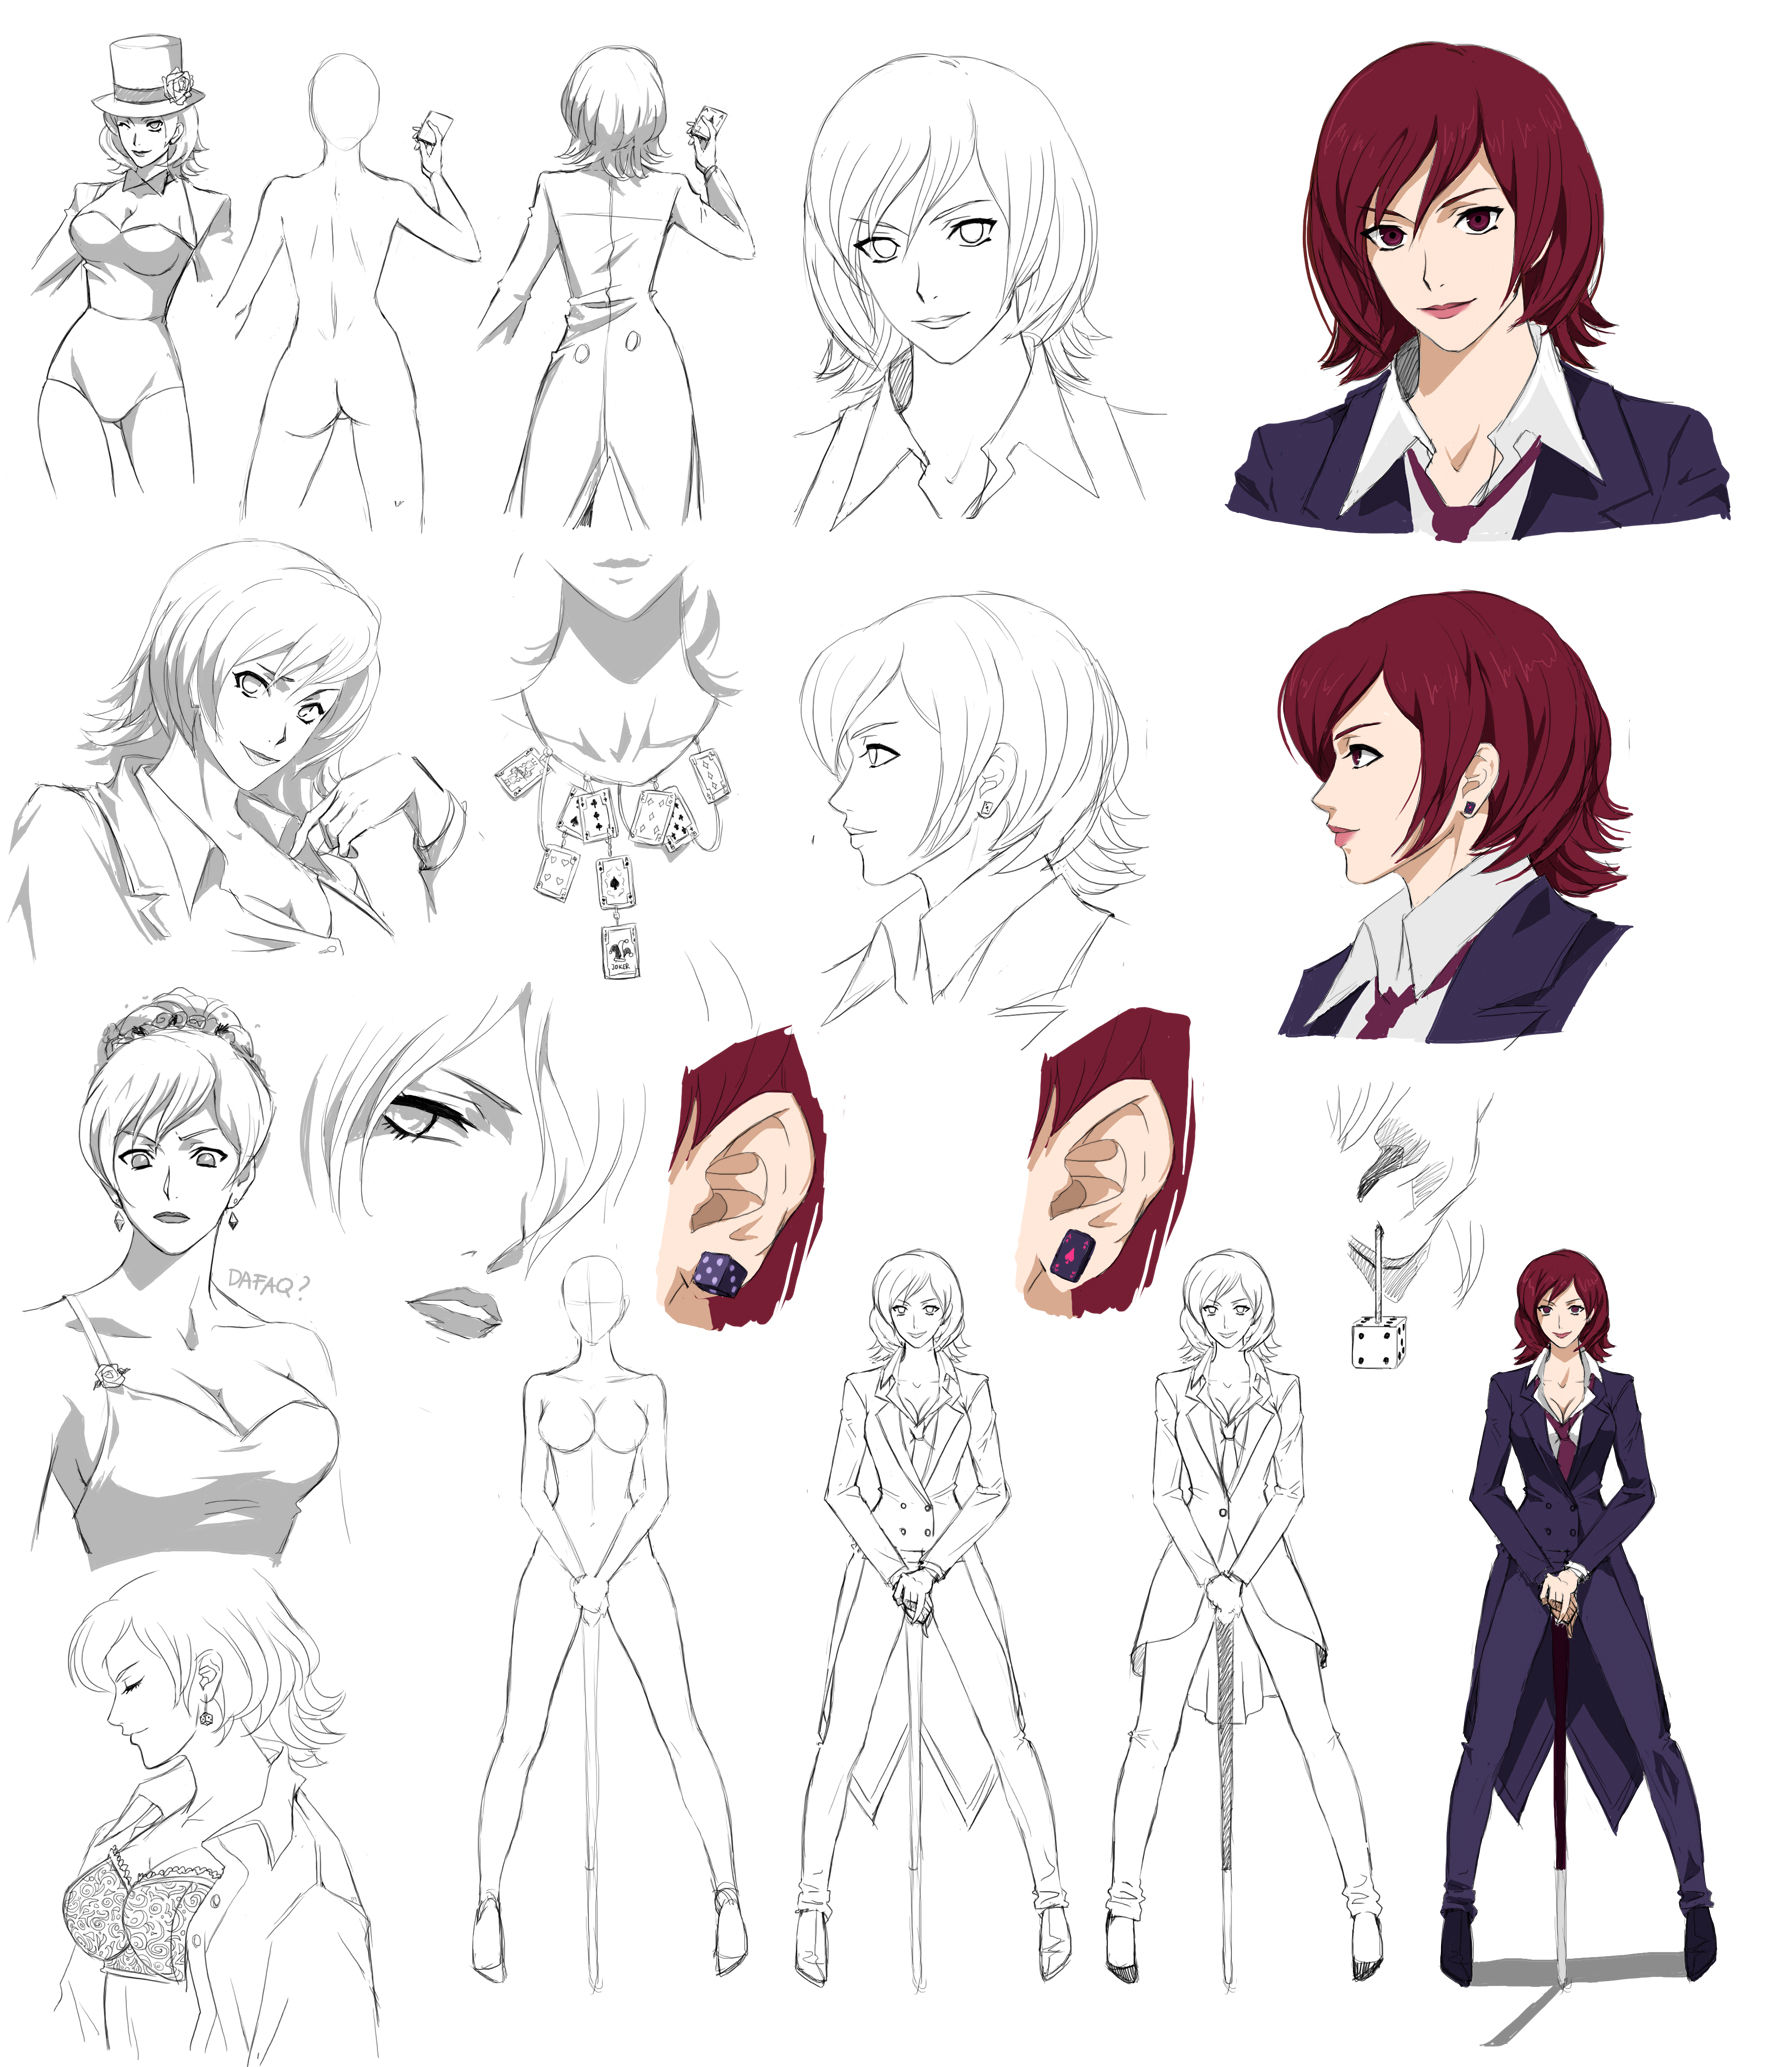 Anime Female Character Design : Female design steryle commision by precia t on deviantart